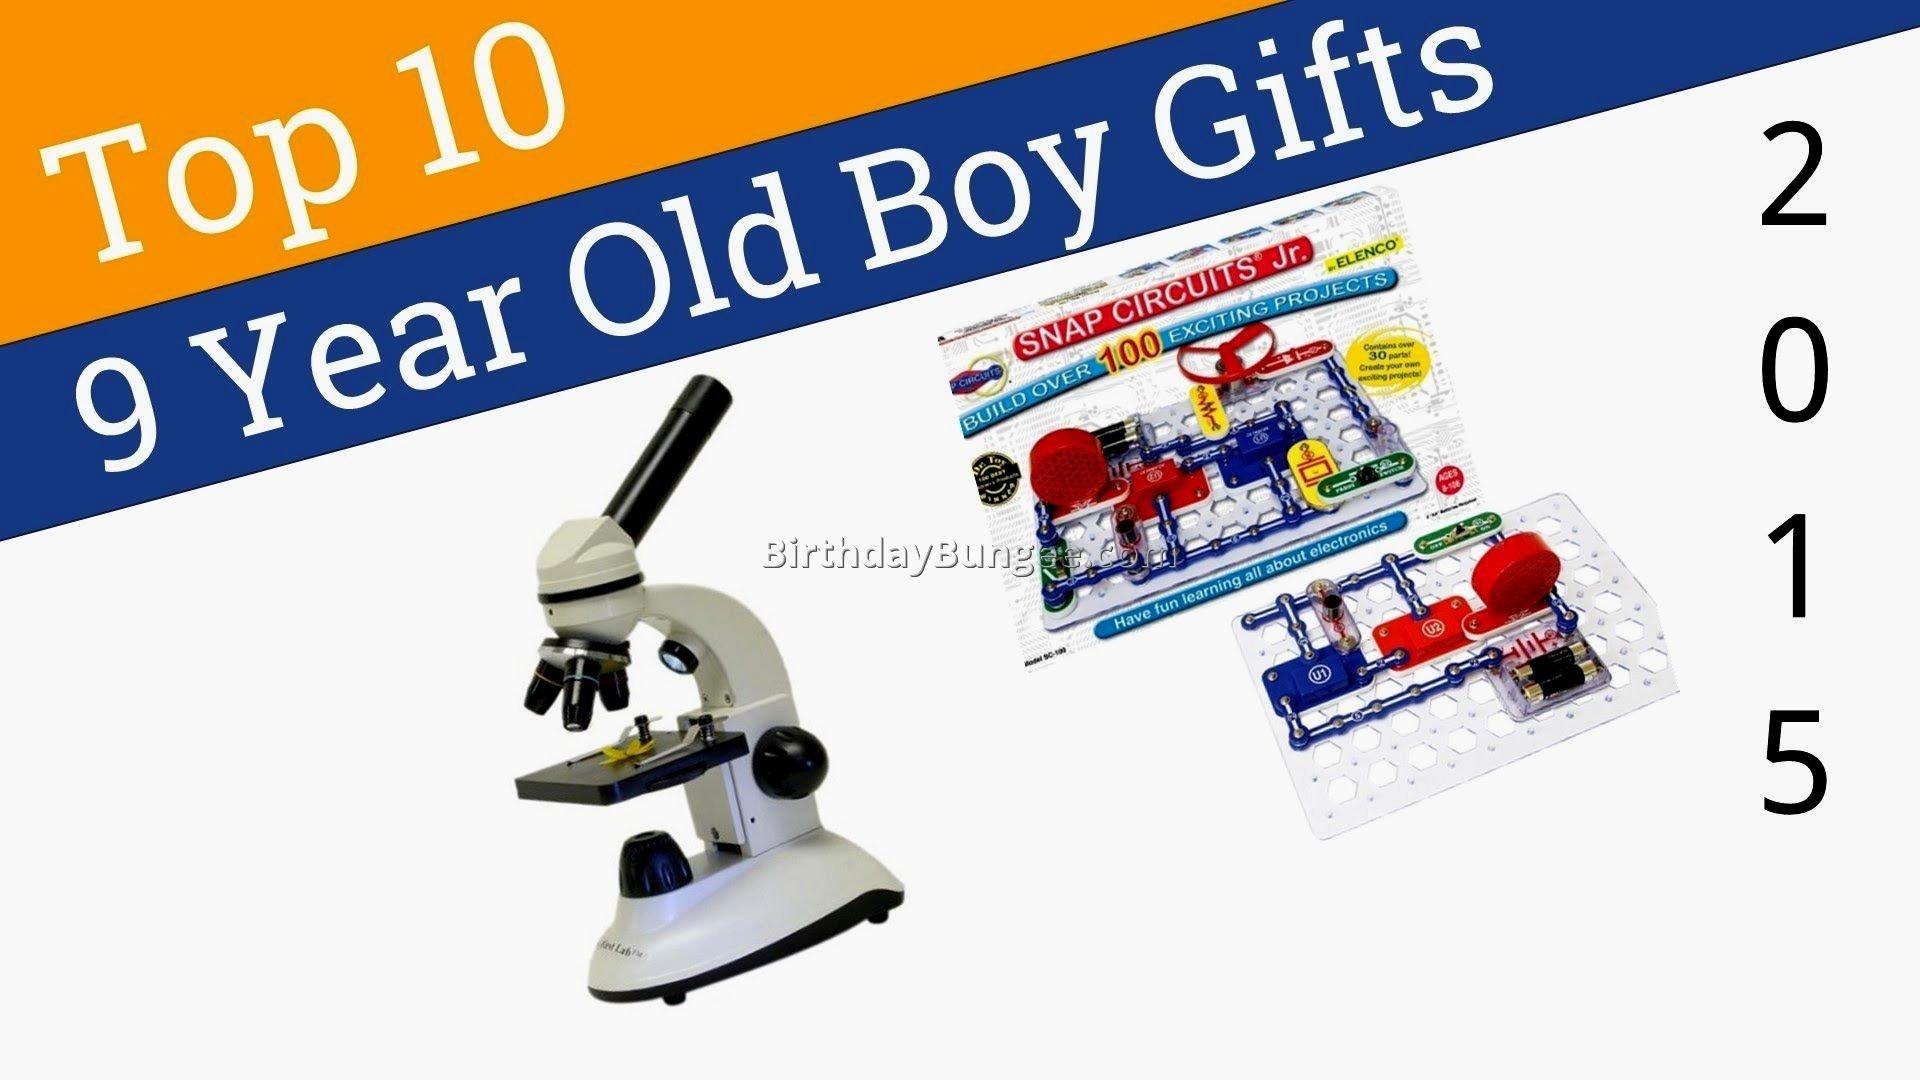 10 lovely christmas gift ideas for 9 year old boys christmas ideas for 9 year old - 3 Year Old Christmas Ideas